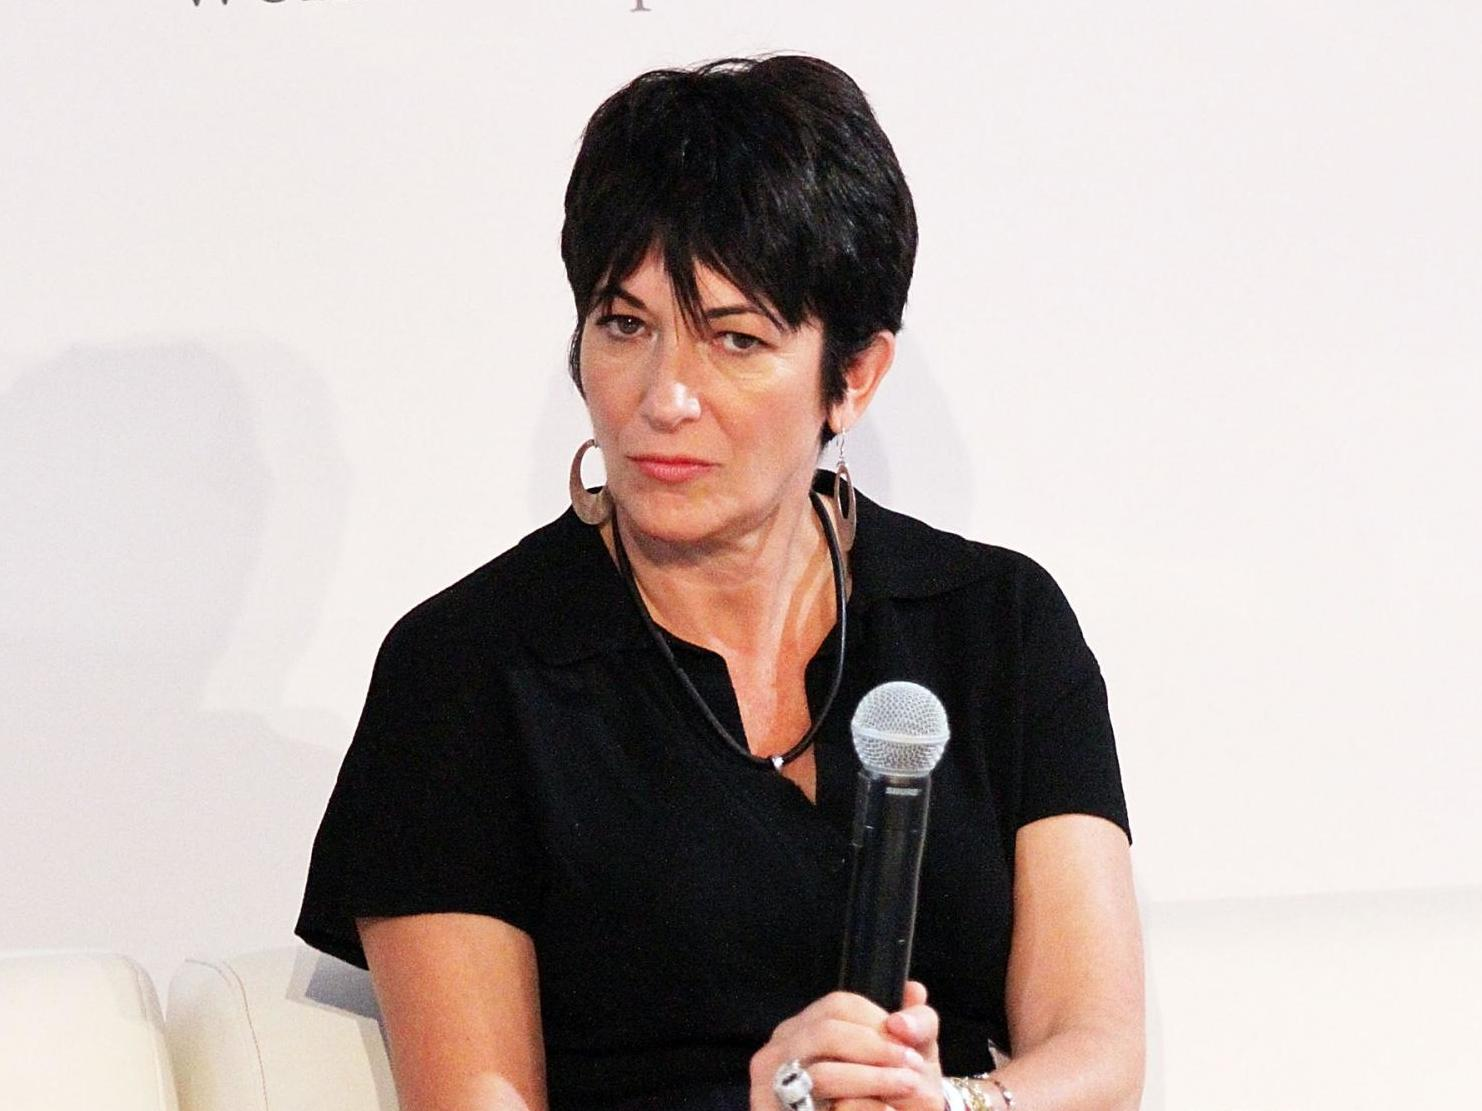 ghislaine maxwell - photo #28